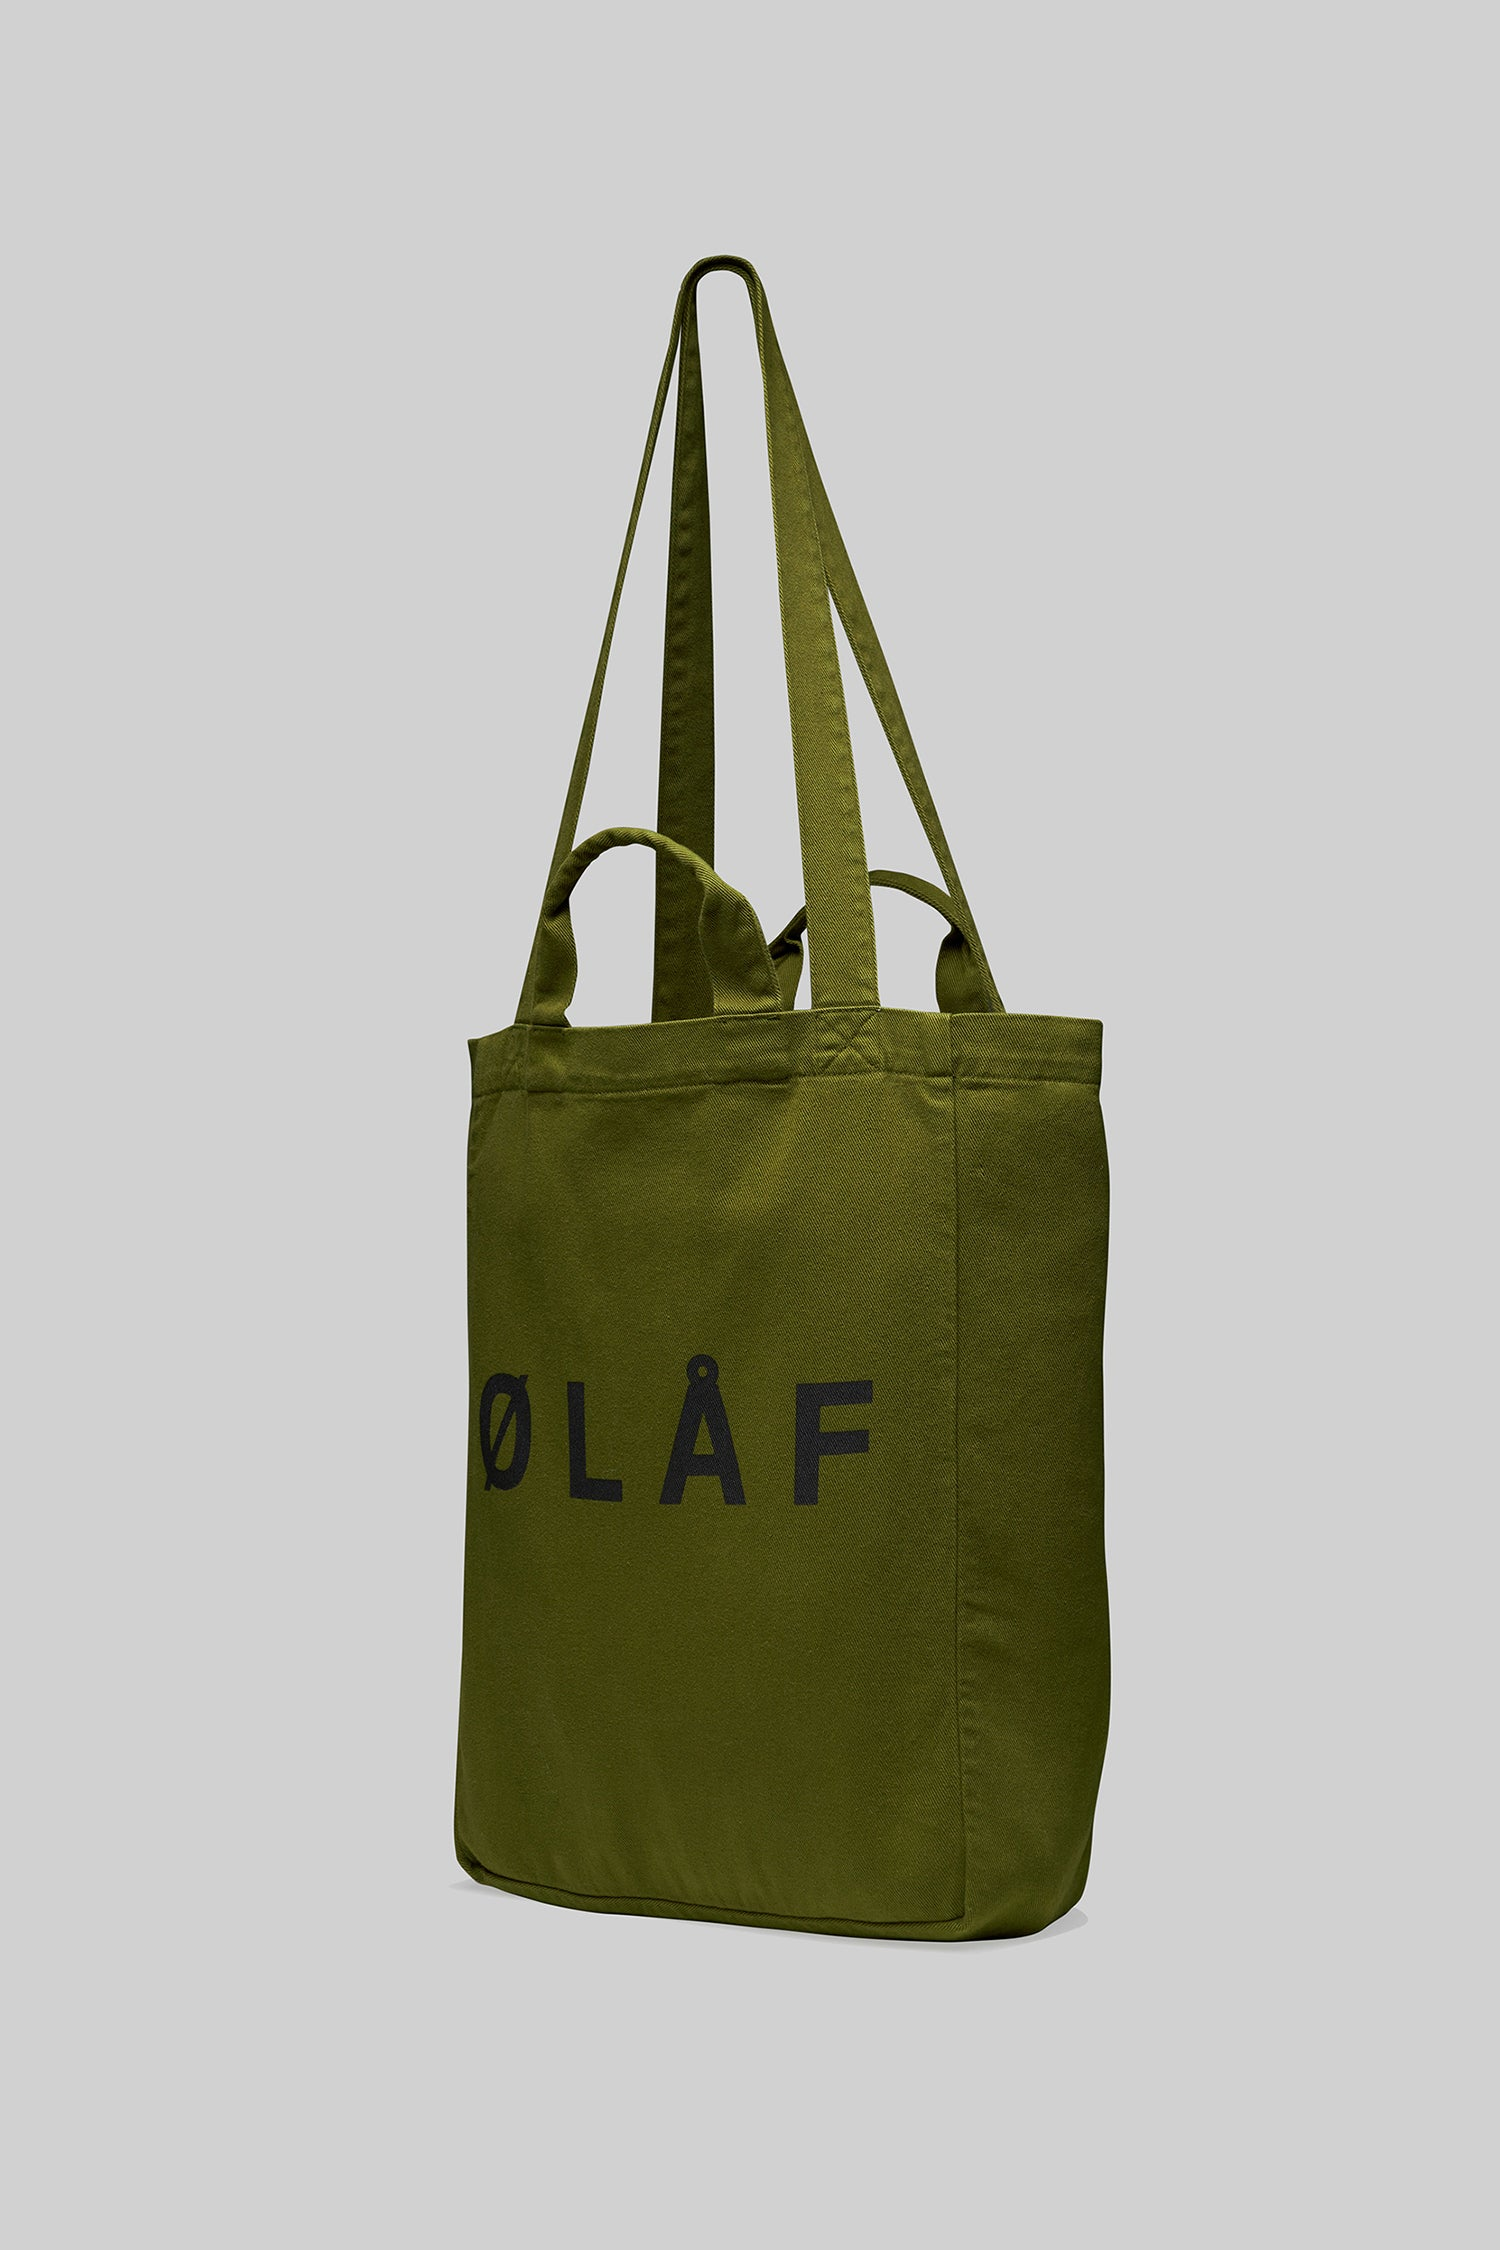 ØLÅF Tote Bag <br>Olive Green